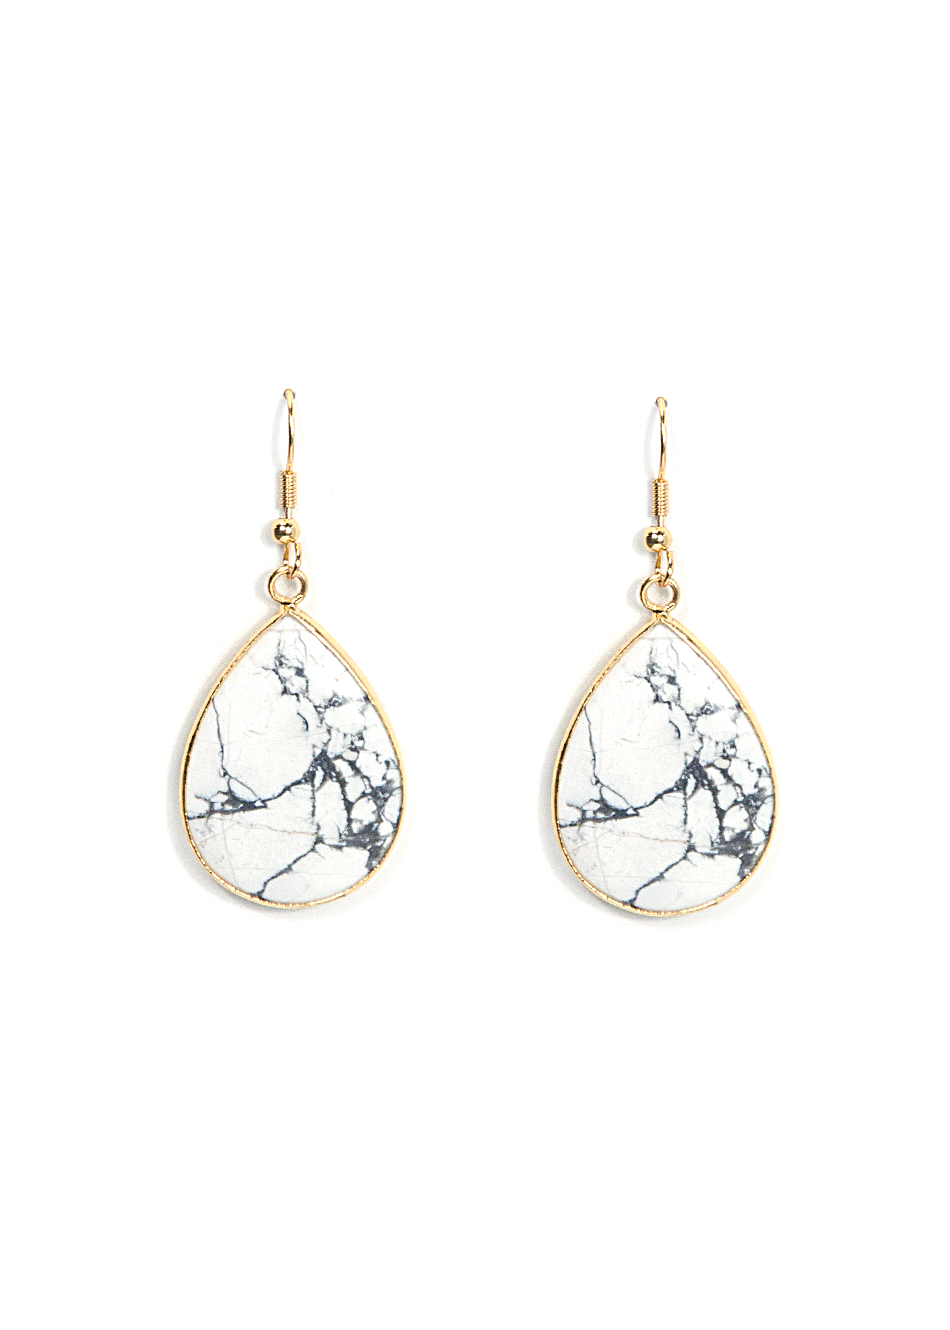 Cl Up Your Outfit With Our Marble Earrings Their Unique Pattern Stands Out From Other Types Of Stone Jewelry Make The Trend Own Today